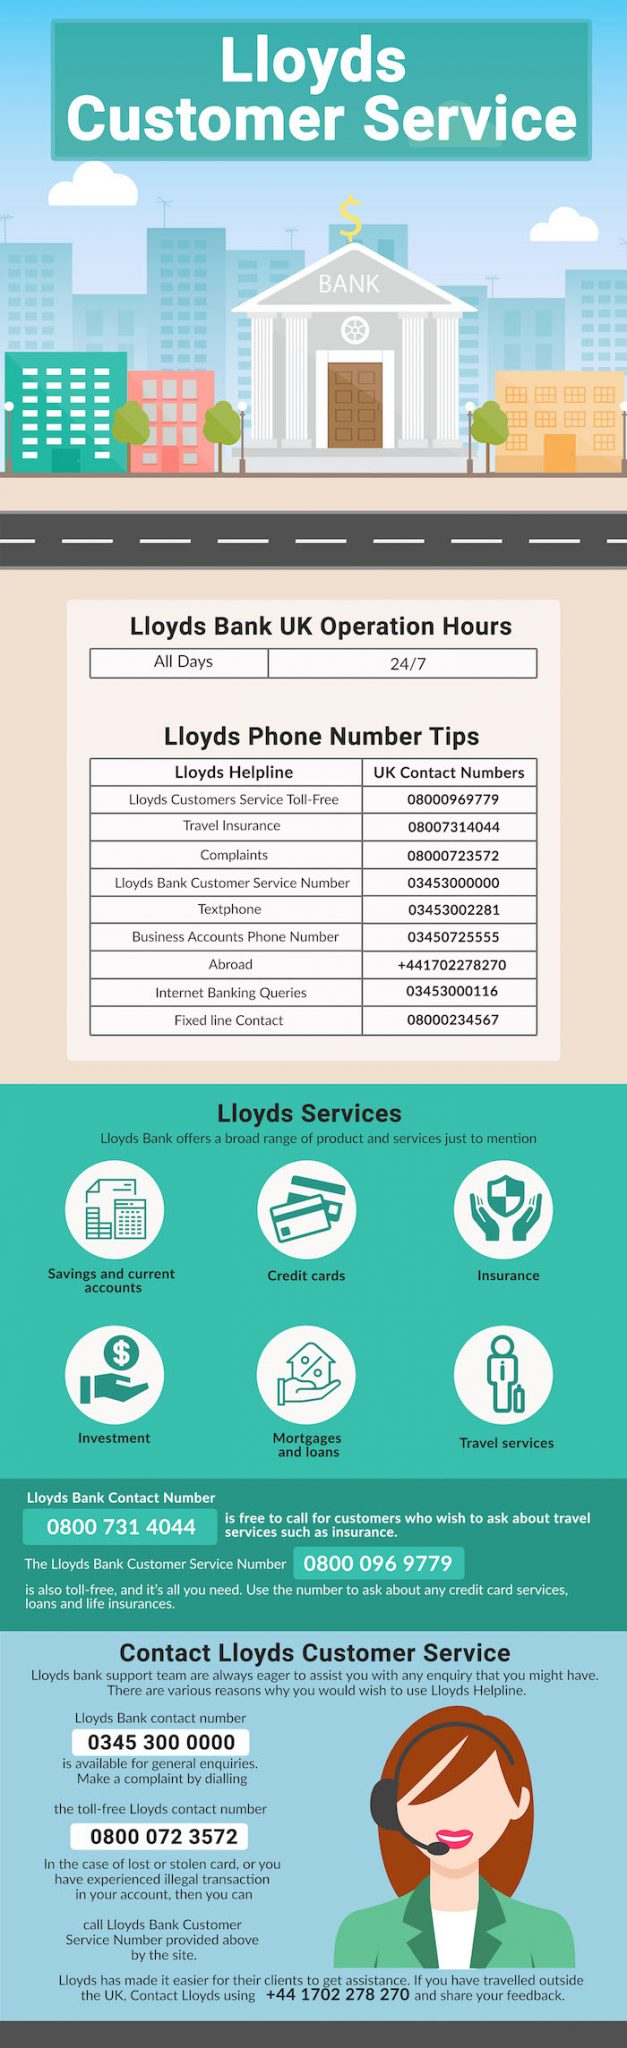 Lloyd Bank Easy Customer Service Number UK | Call - 0844 306 9121